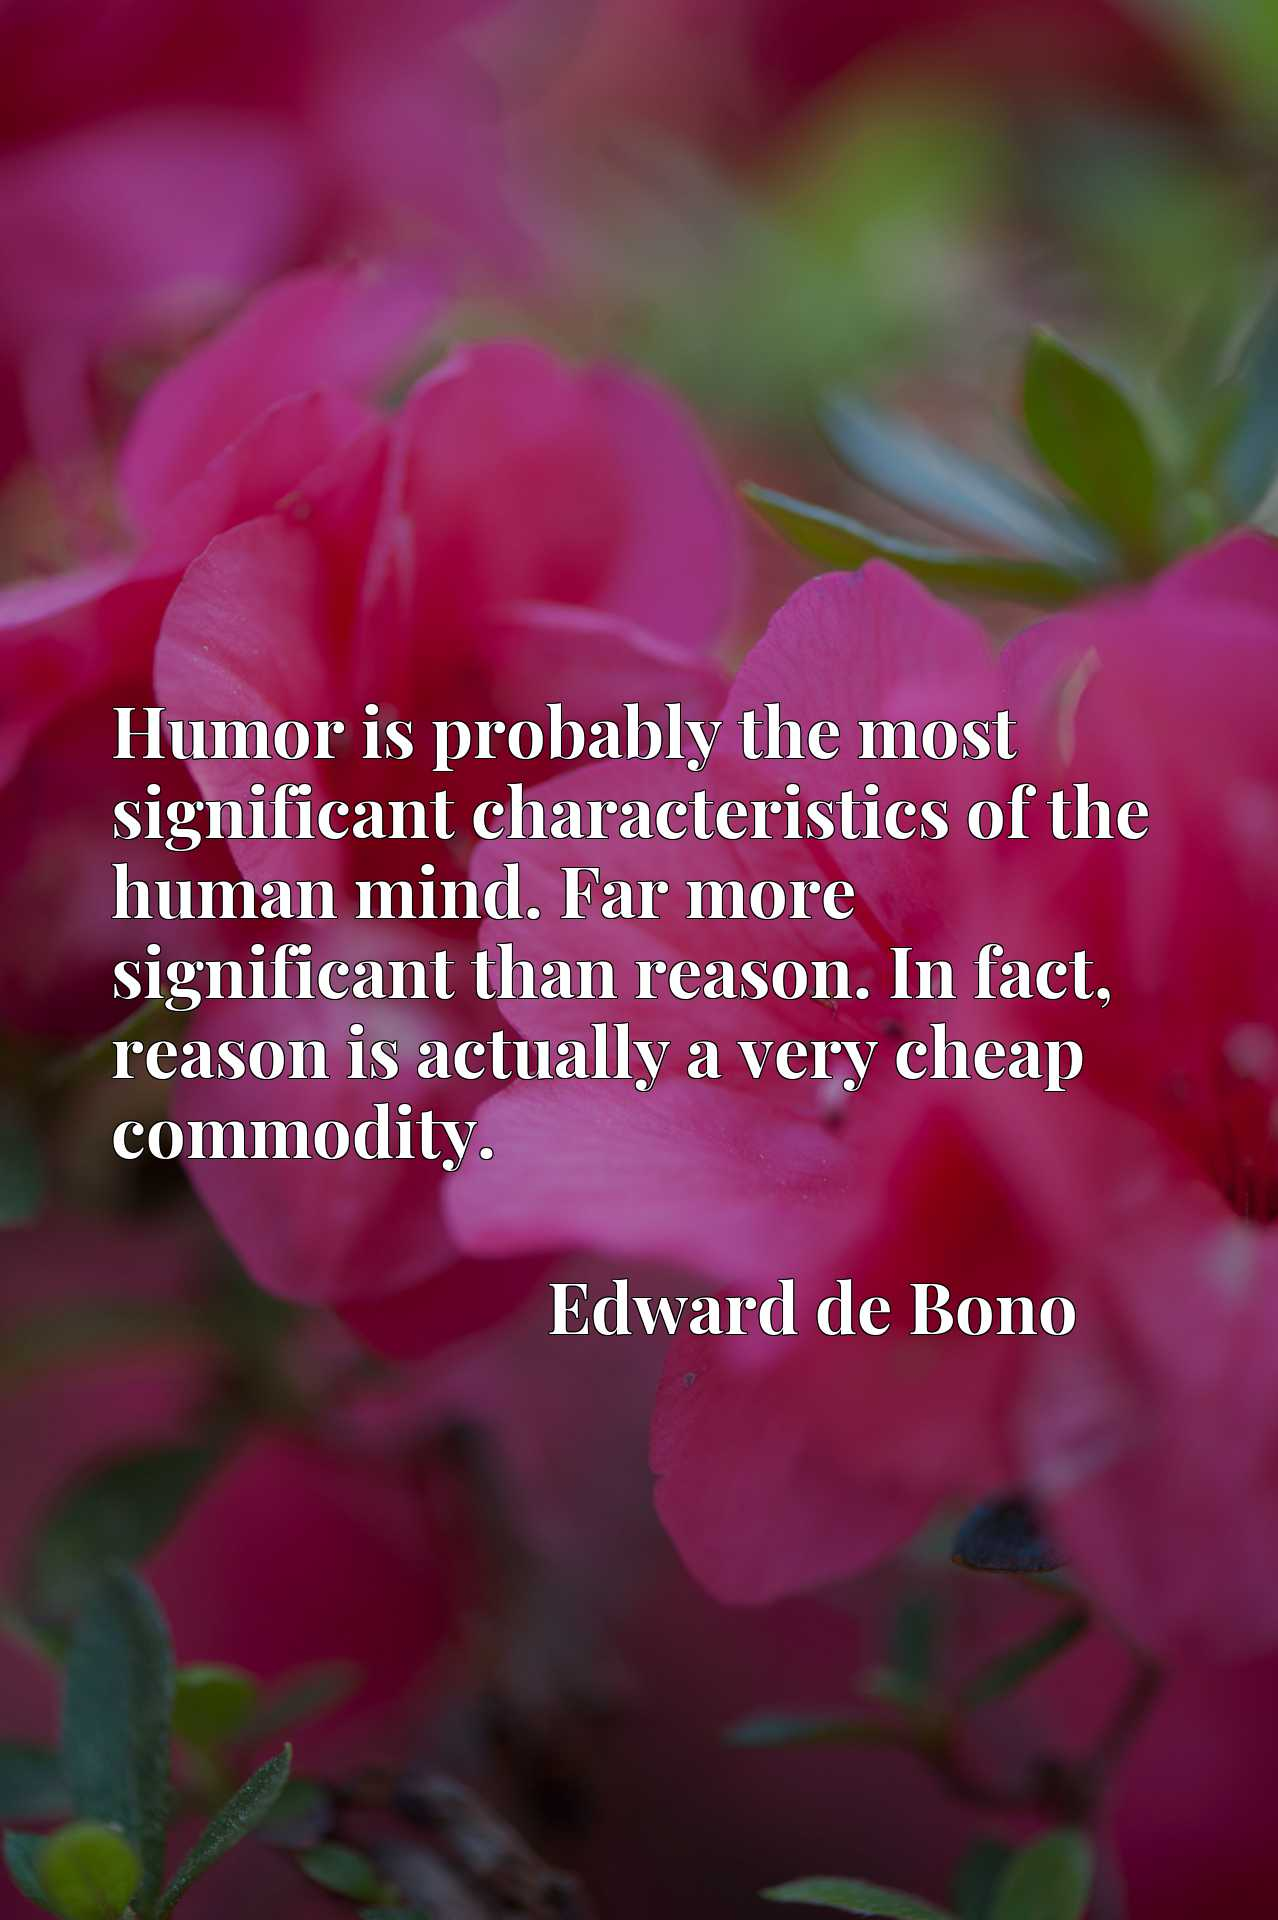 Humor is probably the most significant characteristics of the human mind. Far more significant than reason. In fact, reason is actually a very cheap commodity.